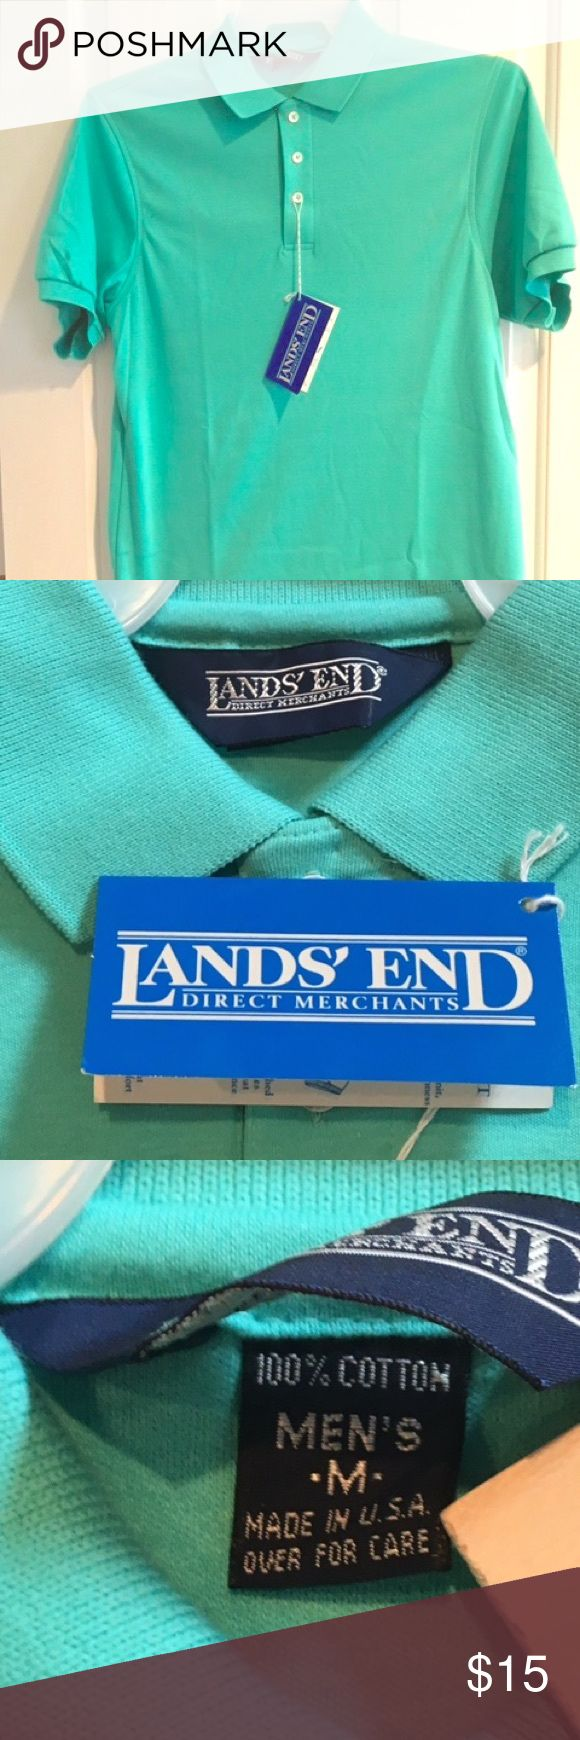 NWT Men's Lands' End Pique Shirt This is a brand new with tags men's short sleeve pique shirt from Lands' End. Beautiful color, this is a great addition to any wardrobe. Very stylish. Lots of great shirts available so bundle for savings. Accepting offers. Thank you. Lands' End Shirts Polos